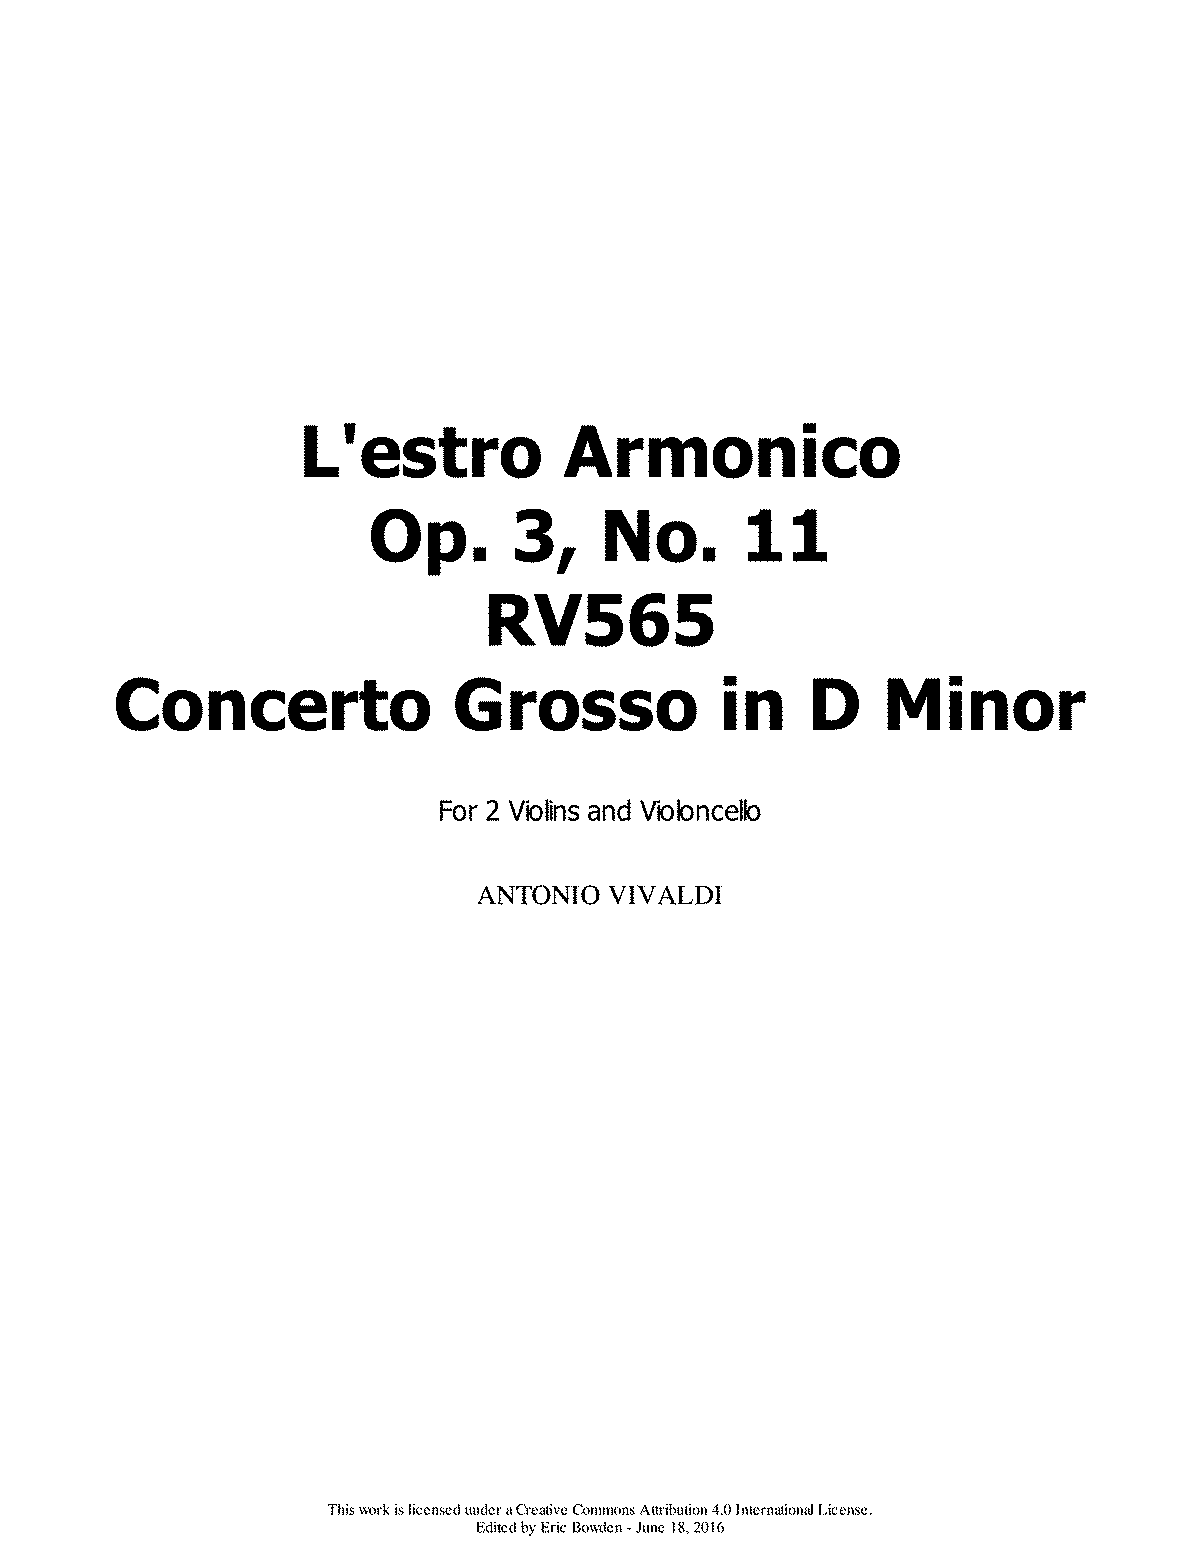 PMLP126416-Vivaldi RV565 Concerto in D Minor for 2 Violins and Cello-Score and Parts.pdf